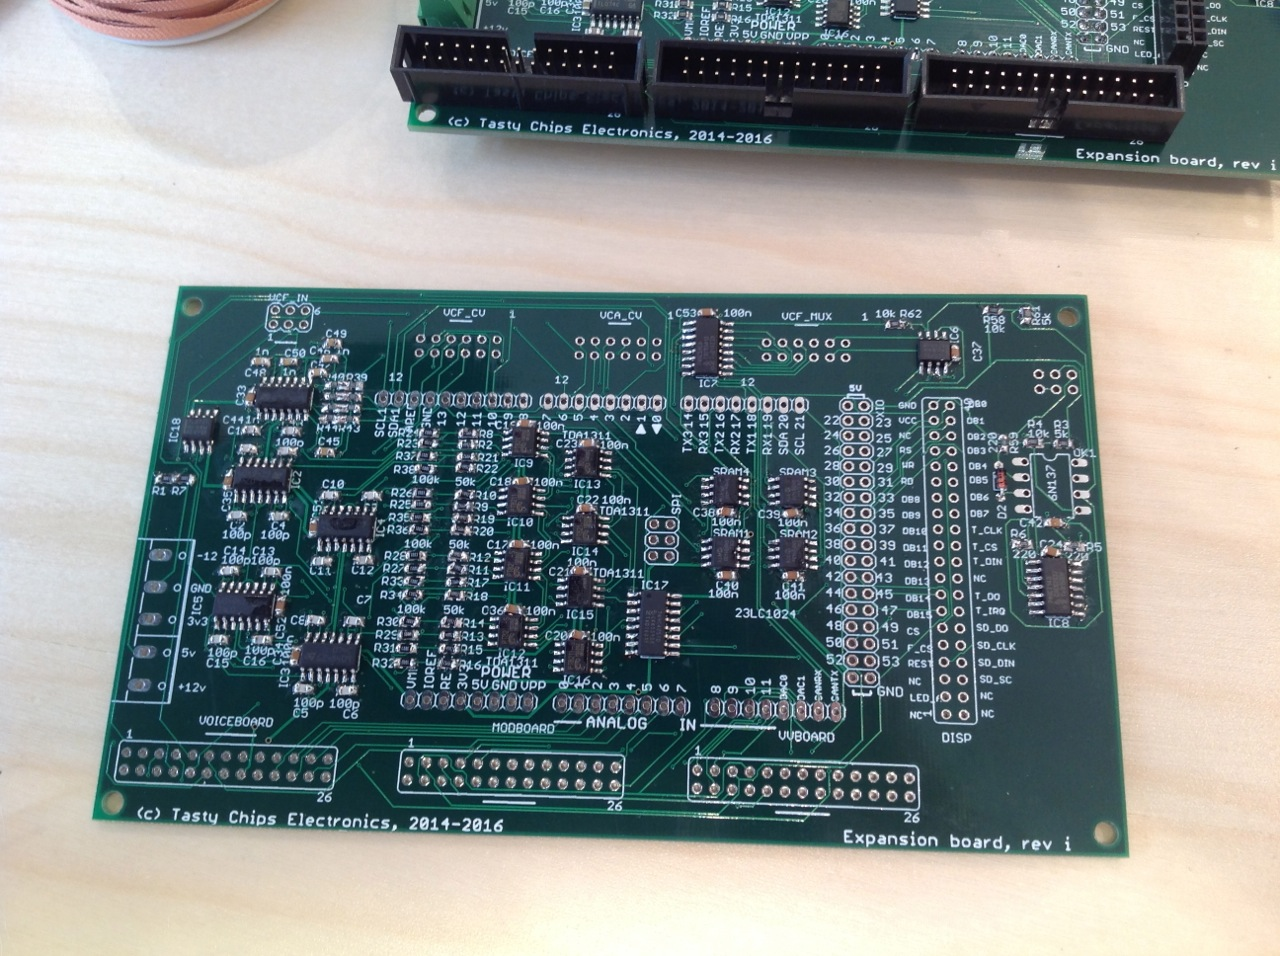 The five TL074 quad-opamps on the left. IC1..IC5. Note that IC1 is the top one and its name is name mentioned on the silkscreen!